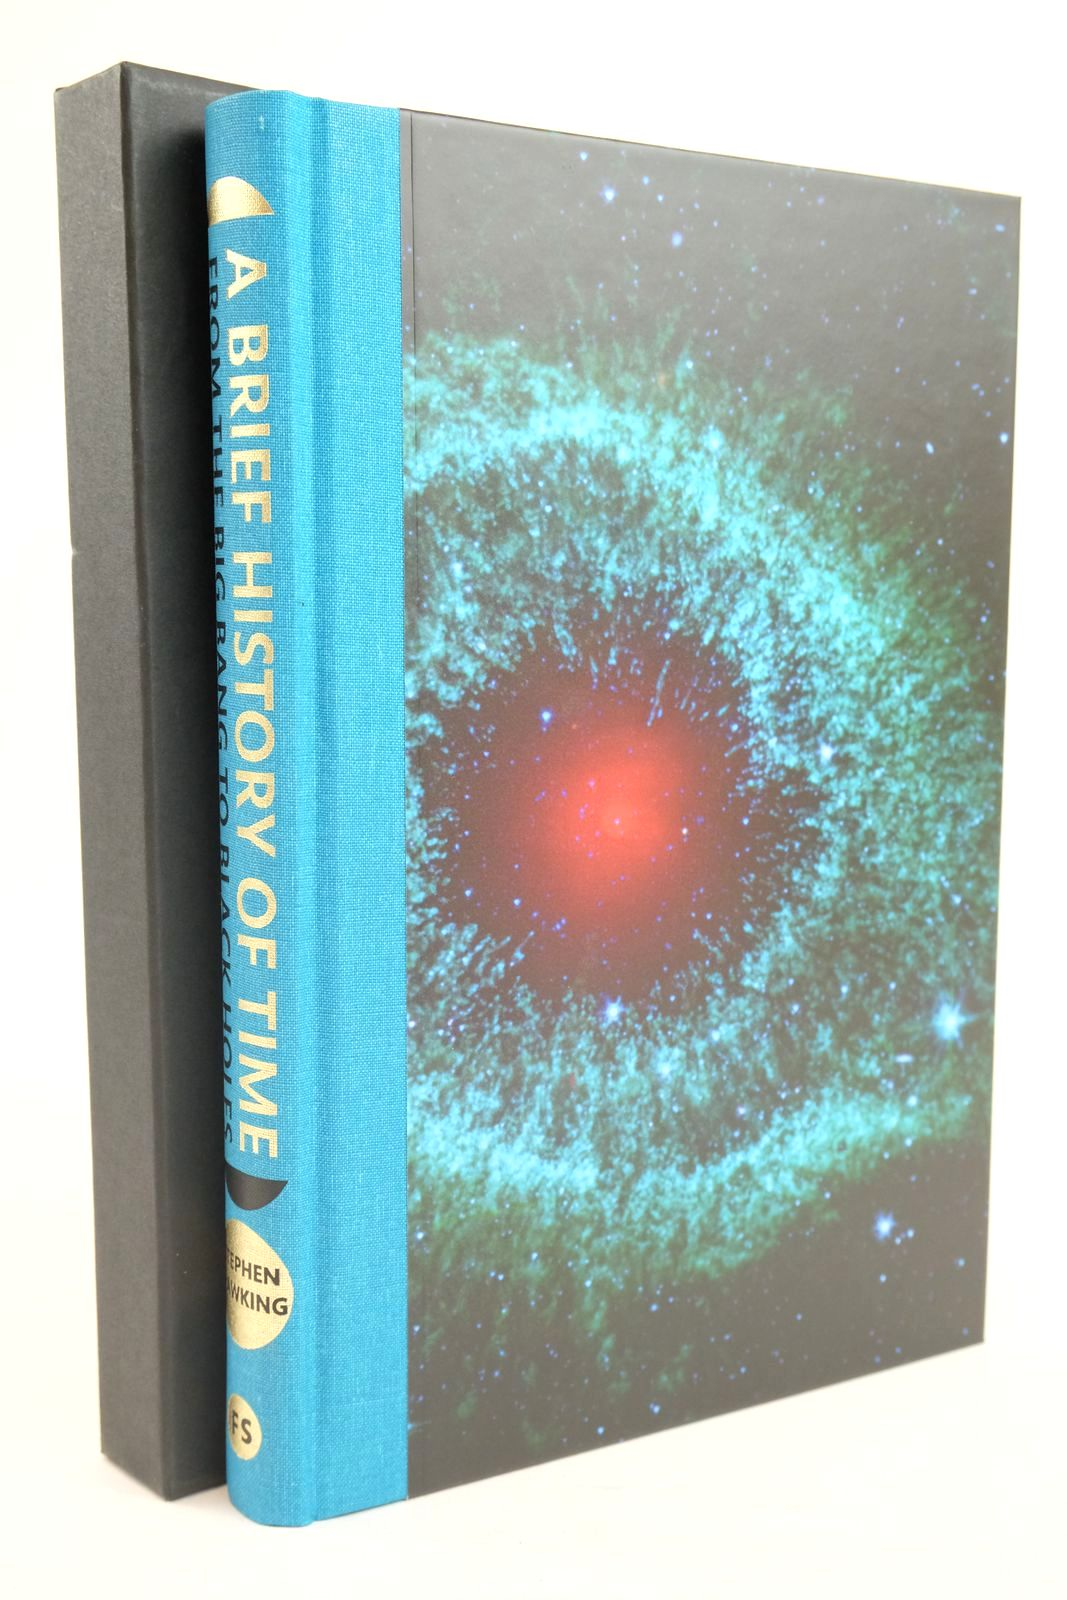 Photo of A BRIEF HISTORY OF TIME FROM THE BIG BANG TO BLACK HOLES written by Hawking, Stephen W. published by Folio Society (STOCK CODE: 1320005)  for sale by Stella & Rose's Books